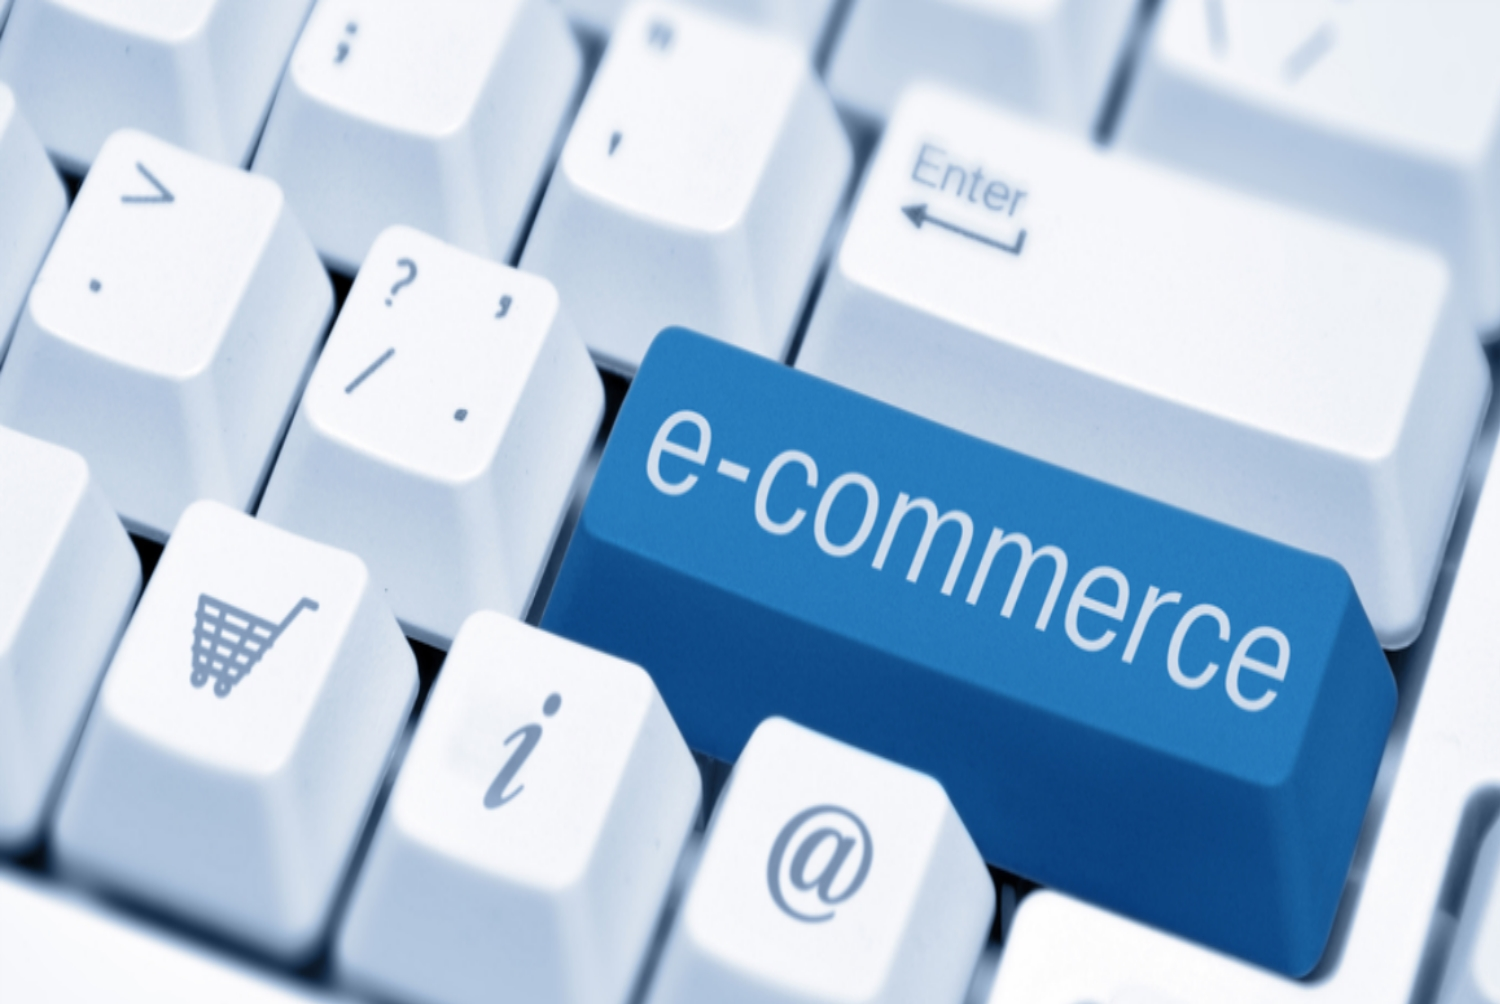 China: Guangdong Province to Use Blockchain-Based Electronic Tax Invoices for E-Commerce